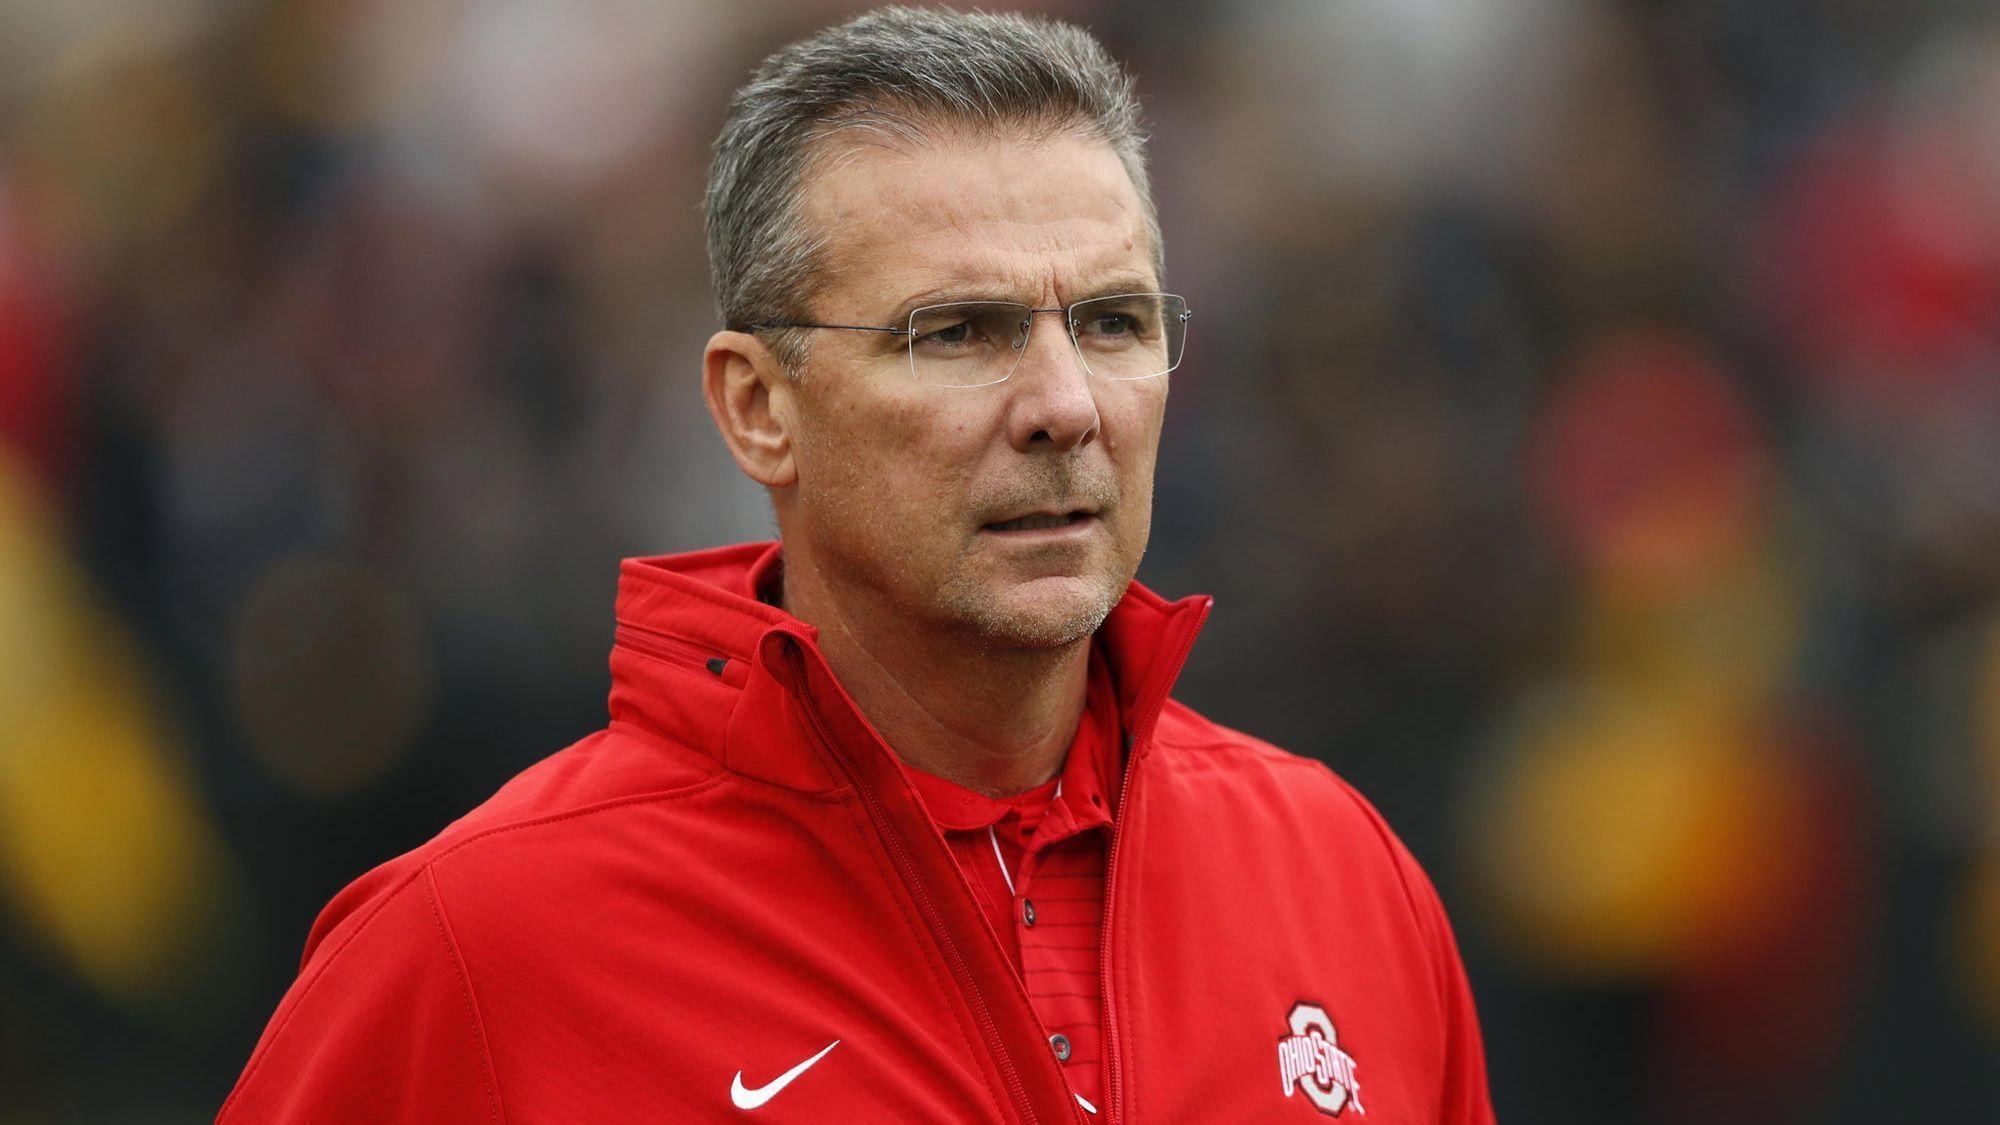 Urban Meyer remains Ohio States coach, but he loses moral